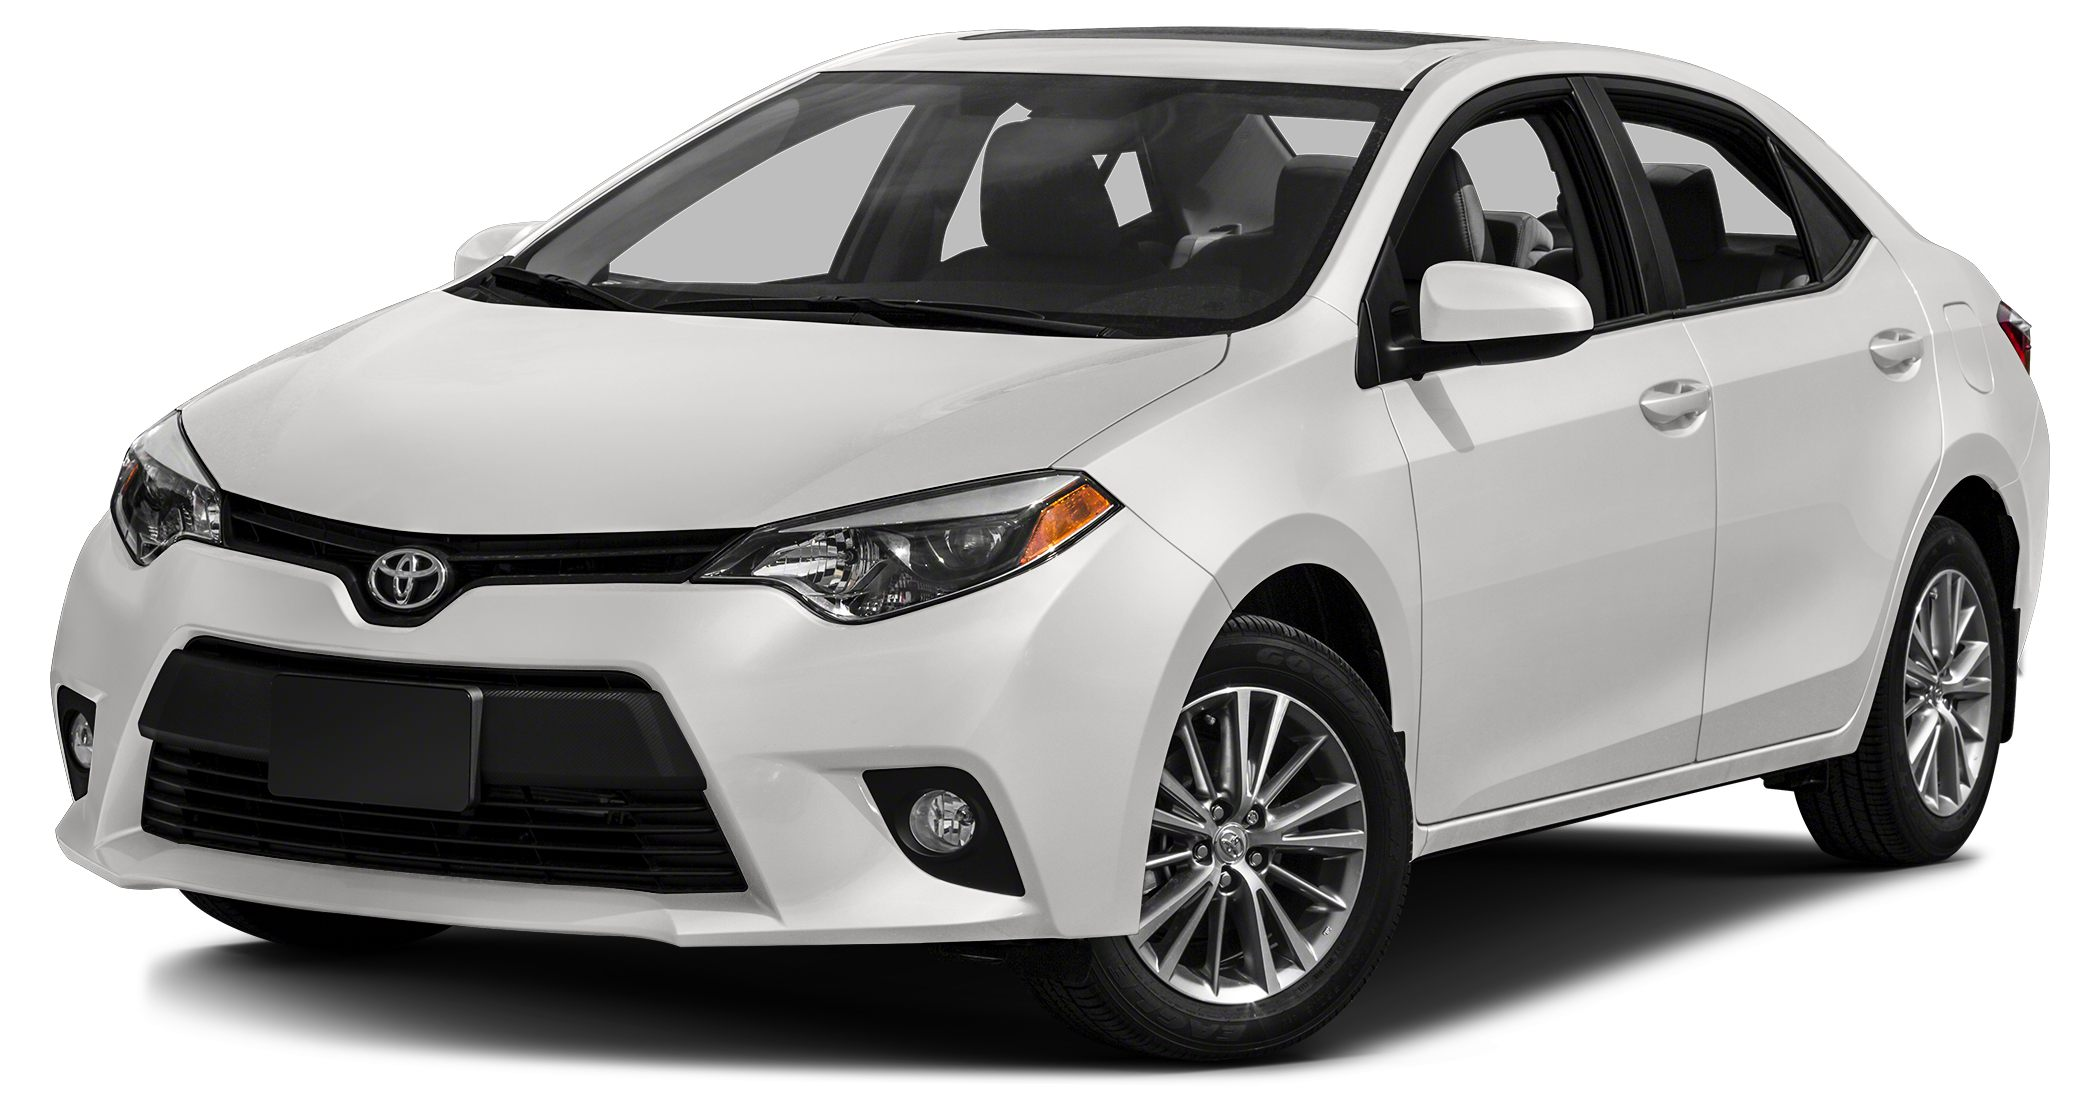 2015 Toyota Corolla  Carfax One-Owner Vehicle This Toyota Corolla boasts a Regular Unleaded I-4 1